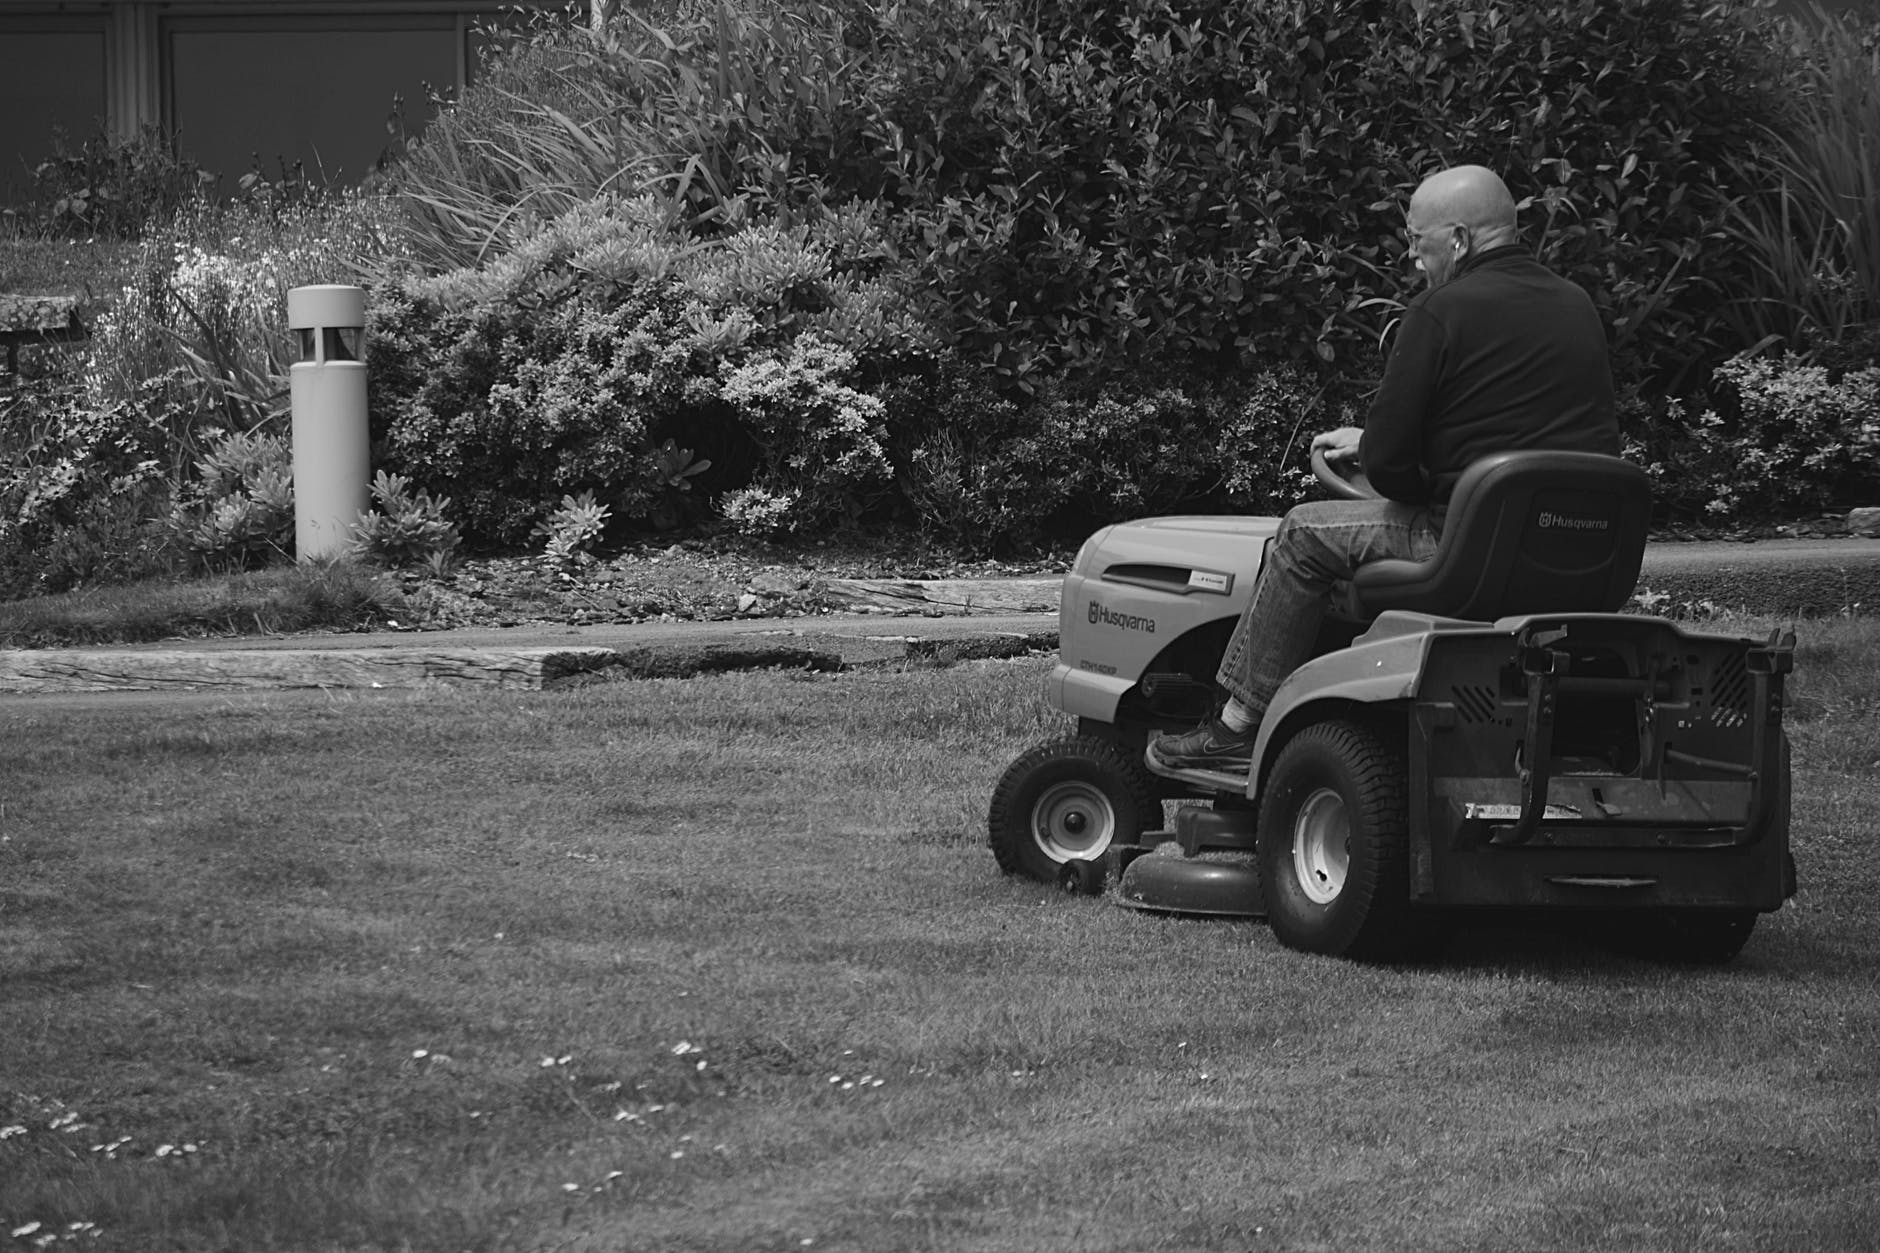 Old man using his ride-on mower to cut grass in his garden